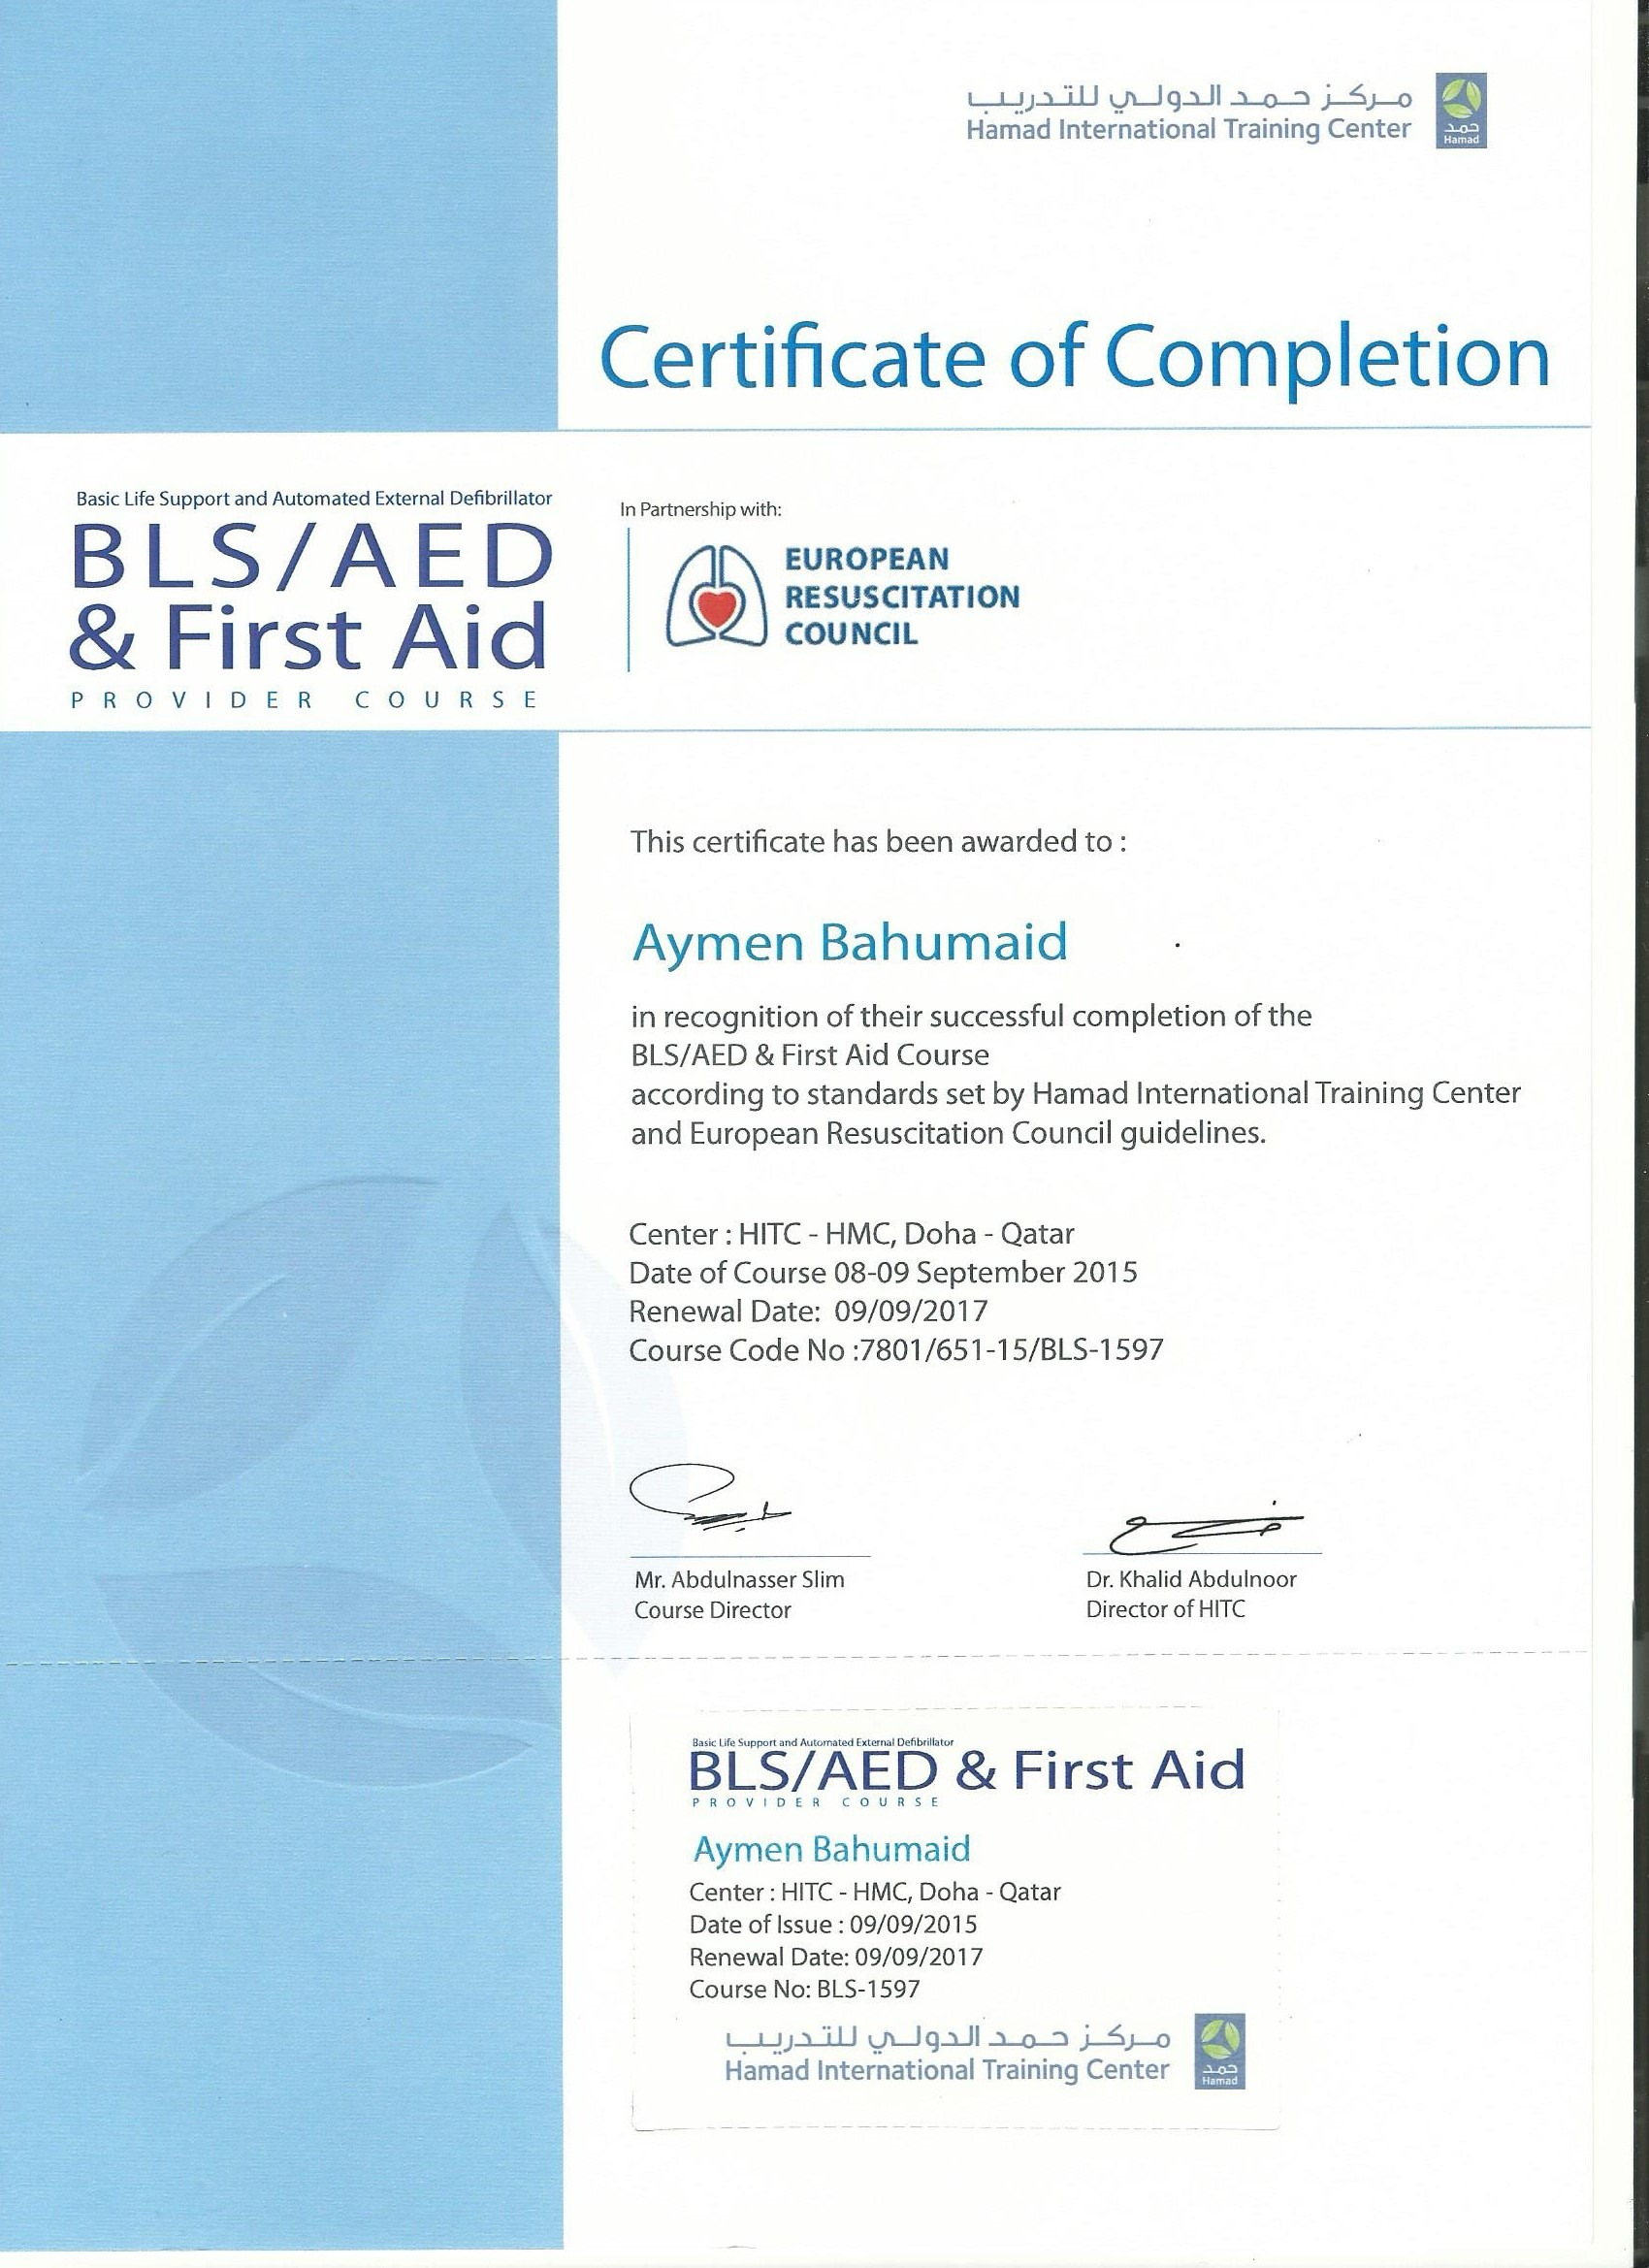 Aymen bahumaid bayt blsaed first aid certificate xflitez Image collections